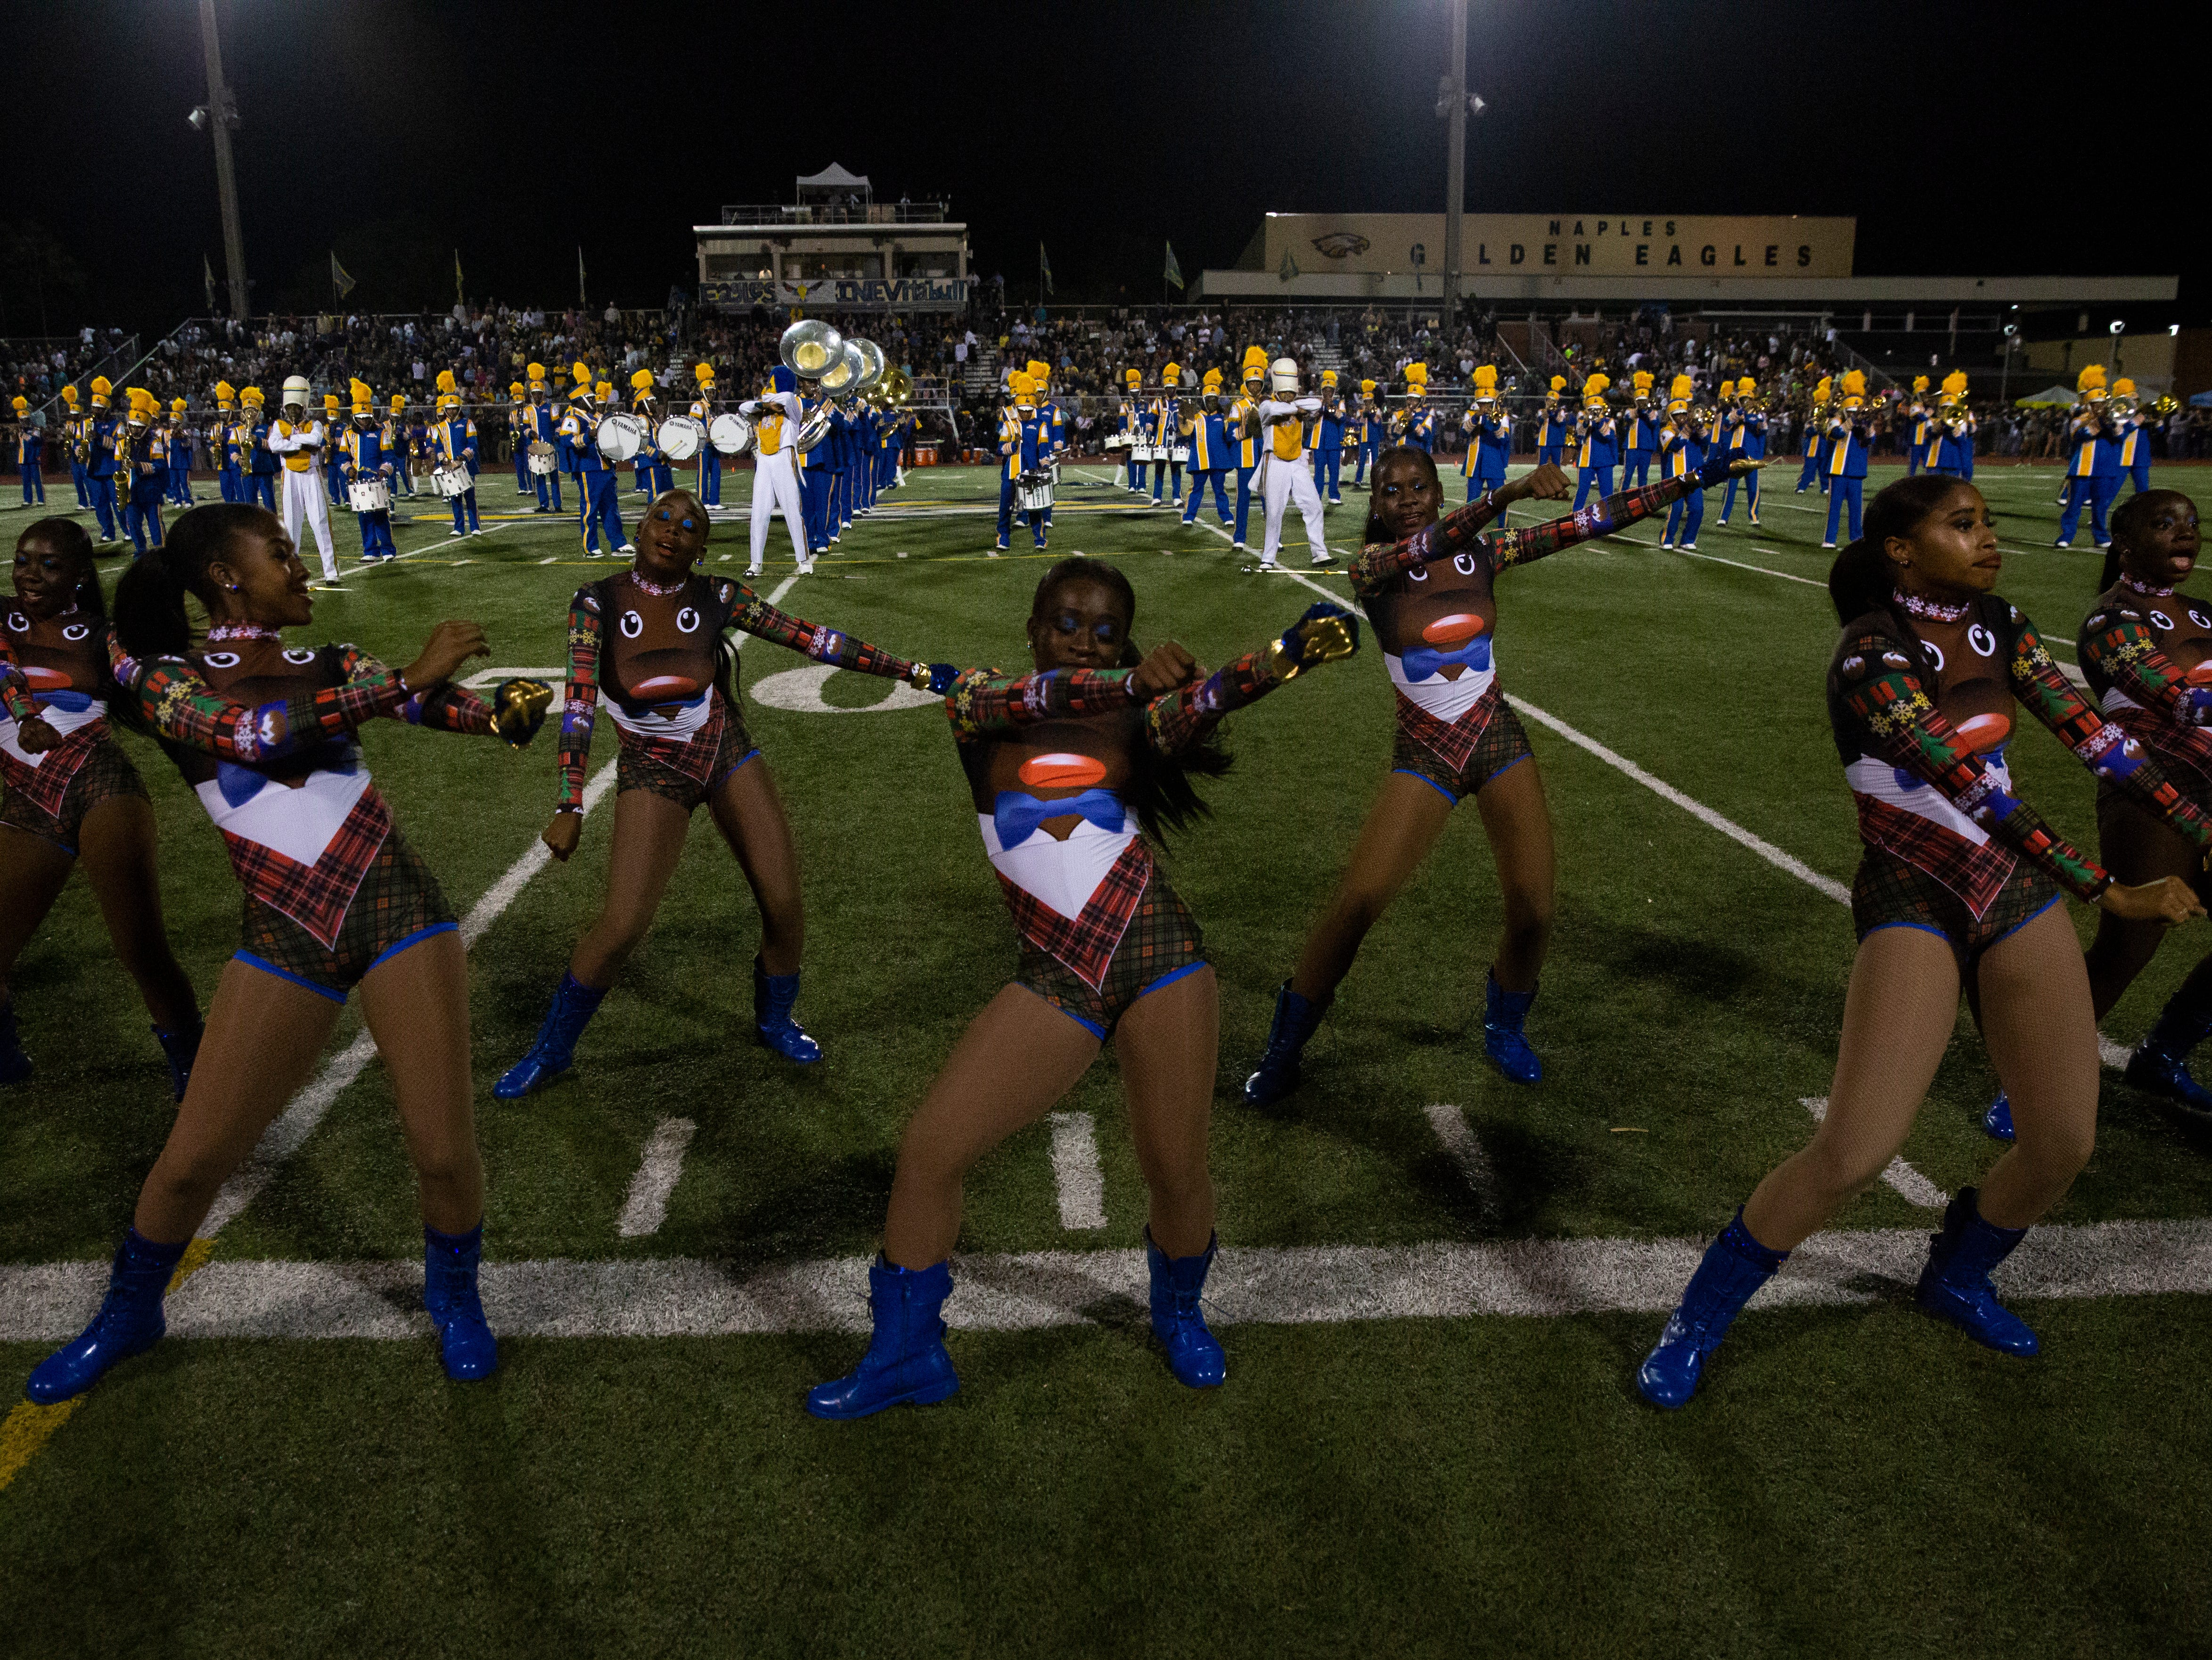 The Miami Northwestern Senior High cheerleaders perform during the Class 6A state semifinals game on Friday, November 30, 2018, at Naples High School in Naples.